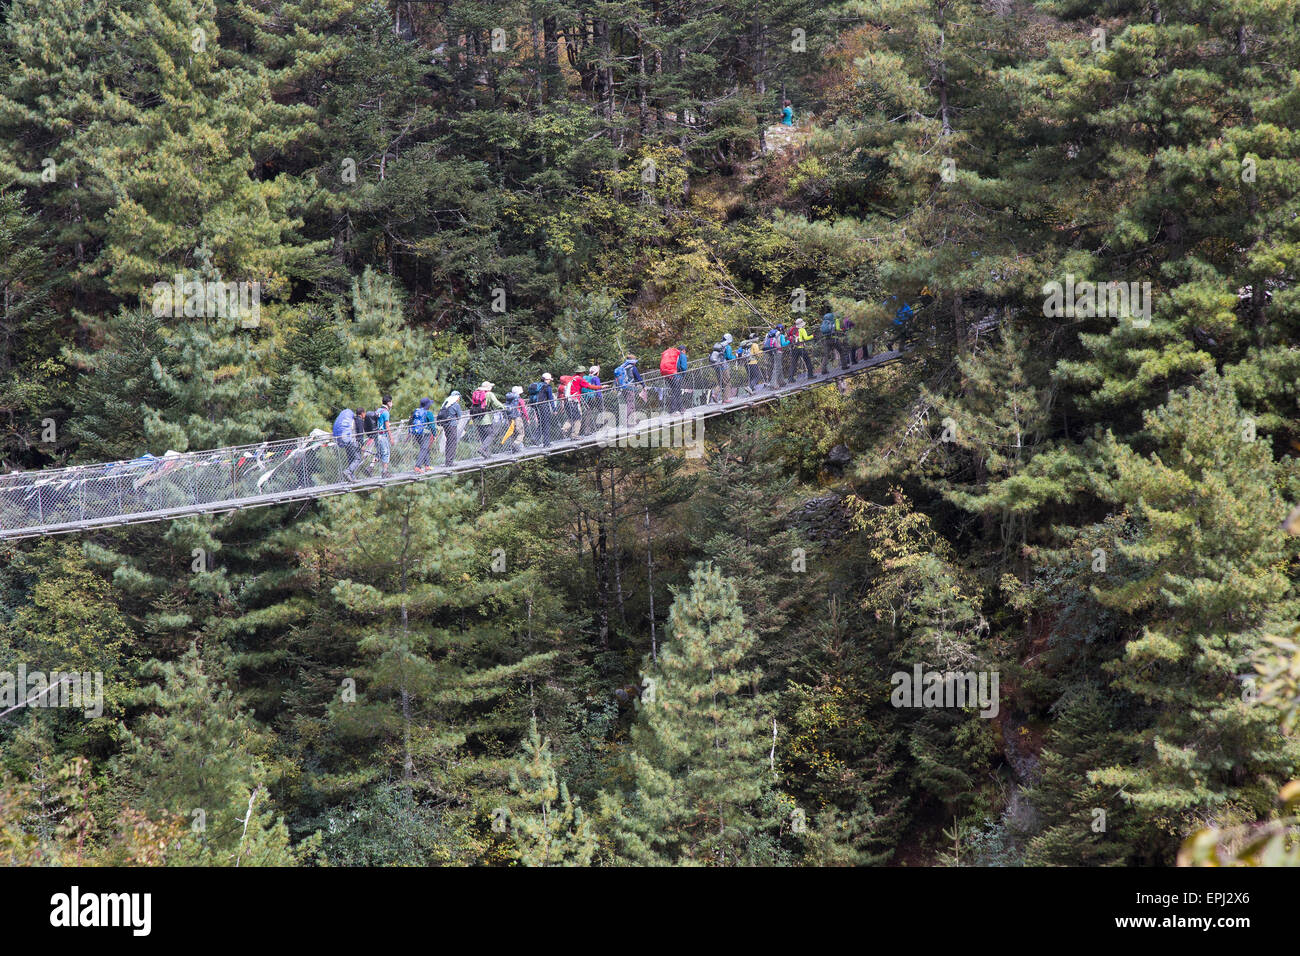 The Everest Base Camp trek crosses the Dudh Kosi River over new wire suspension bridges on the way to Namche Bazaar, - Stock Image